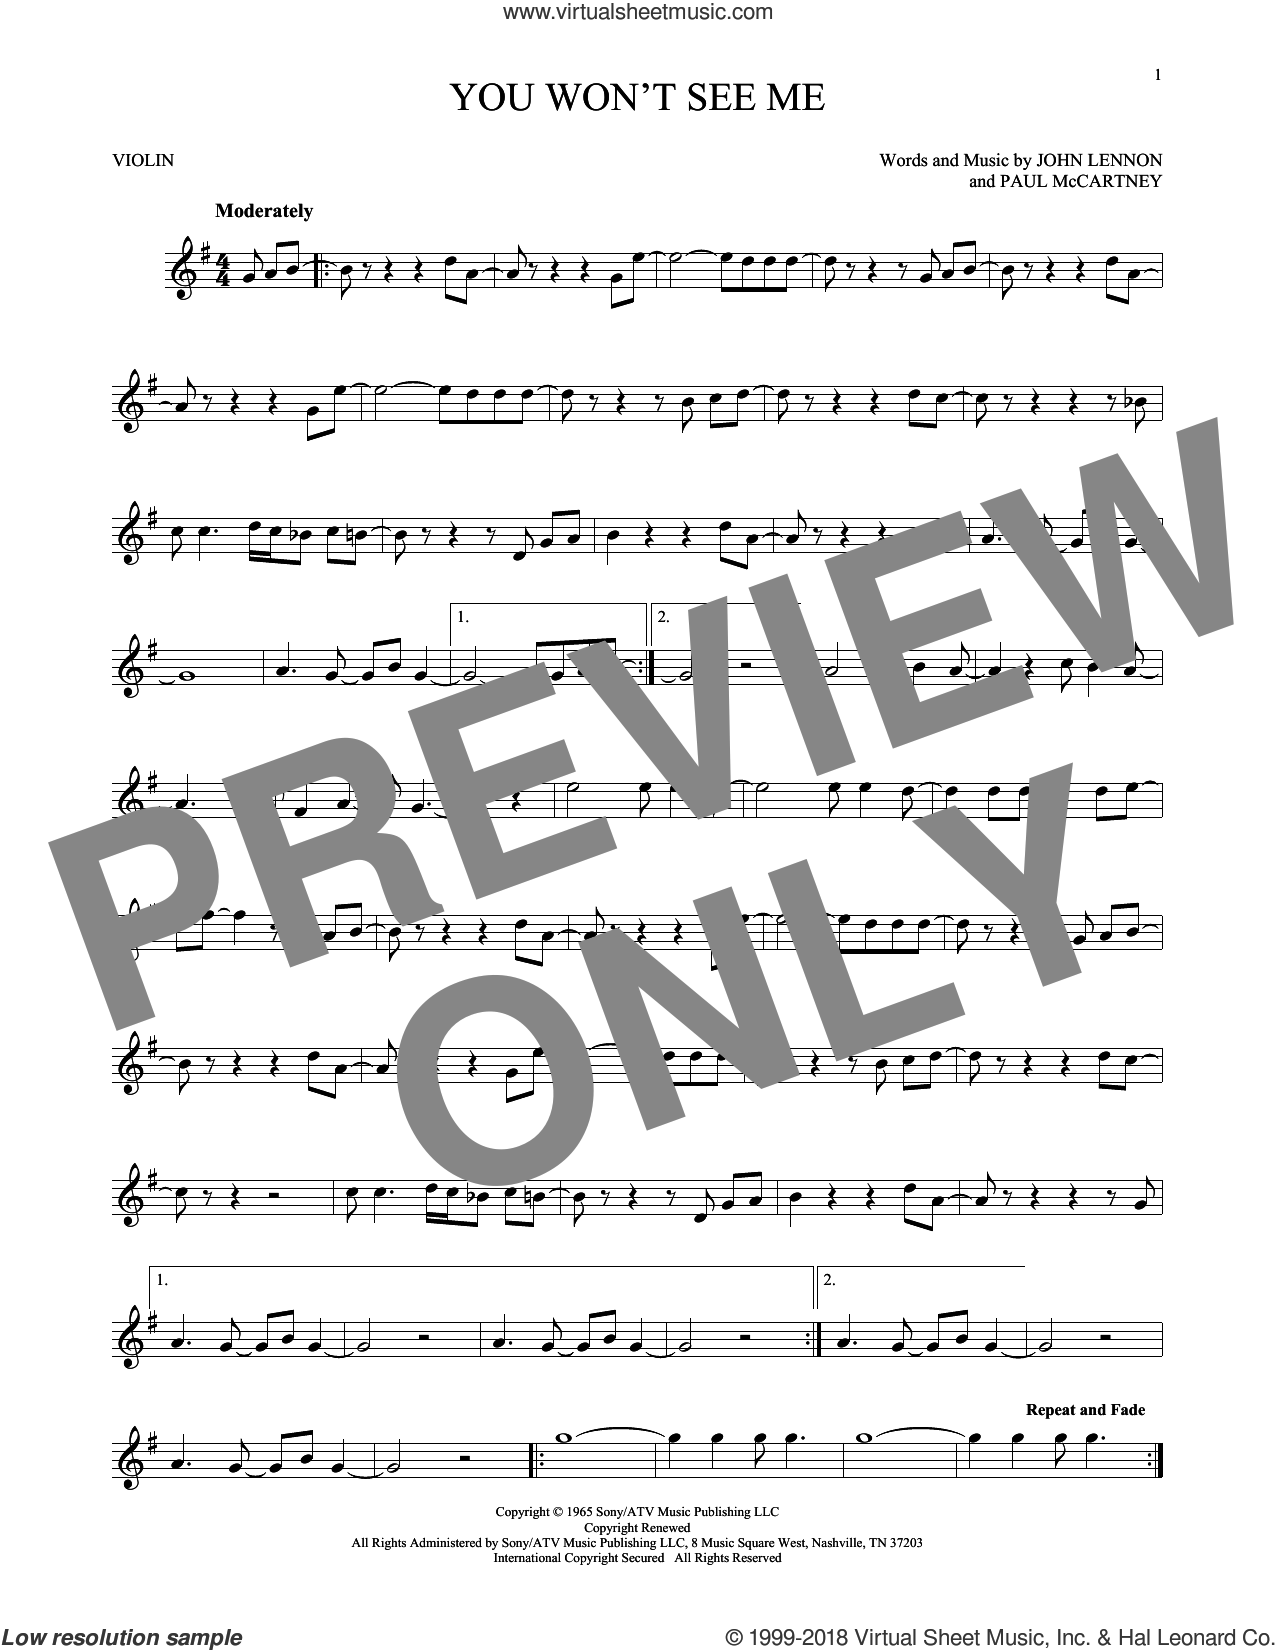 You Won't See Me sheet music for violin solo by Paul McCartney